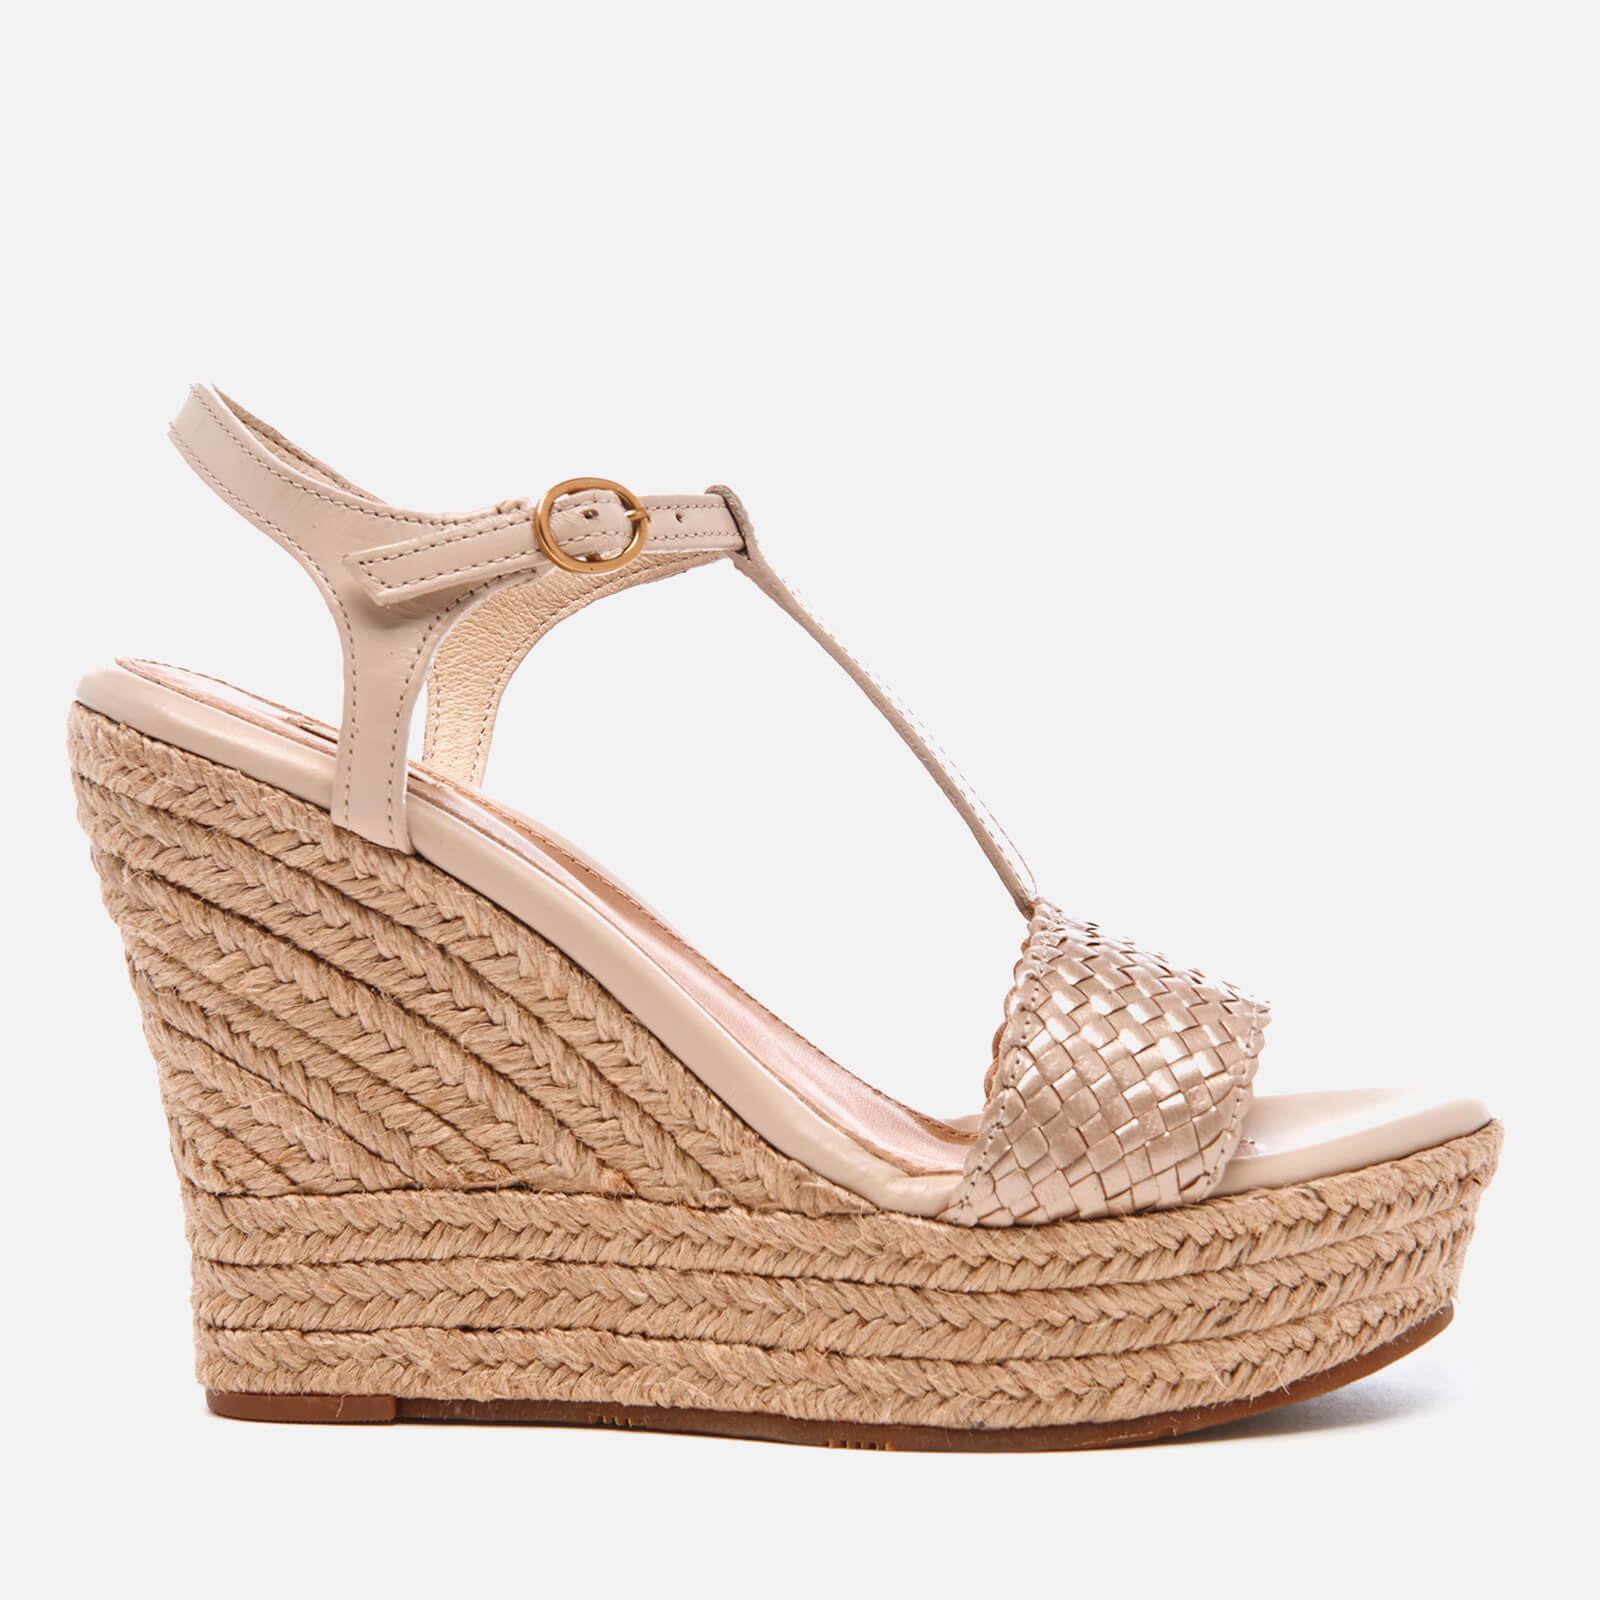 b75782f7d94 UGG Women's Fitchie II T-Strap Jute Wedged Espadrille Sandals - Soft Gold